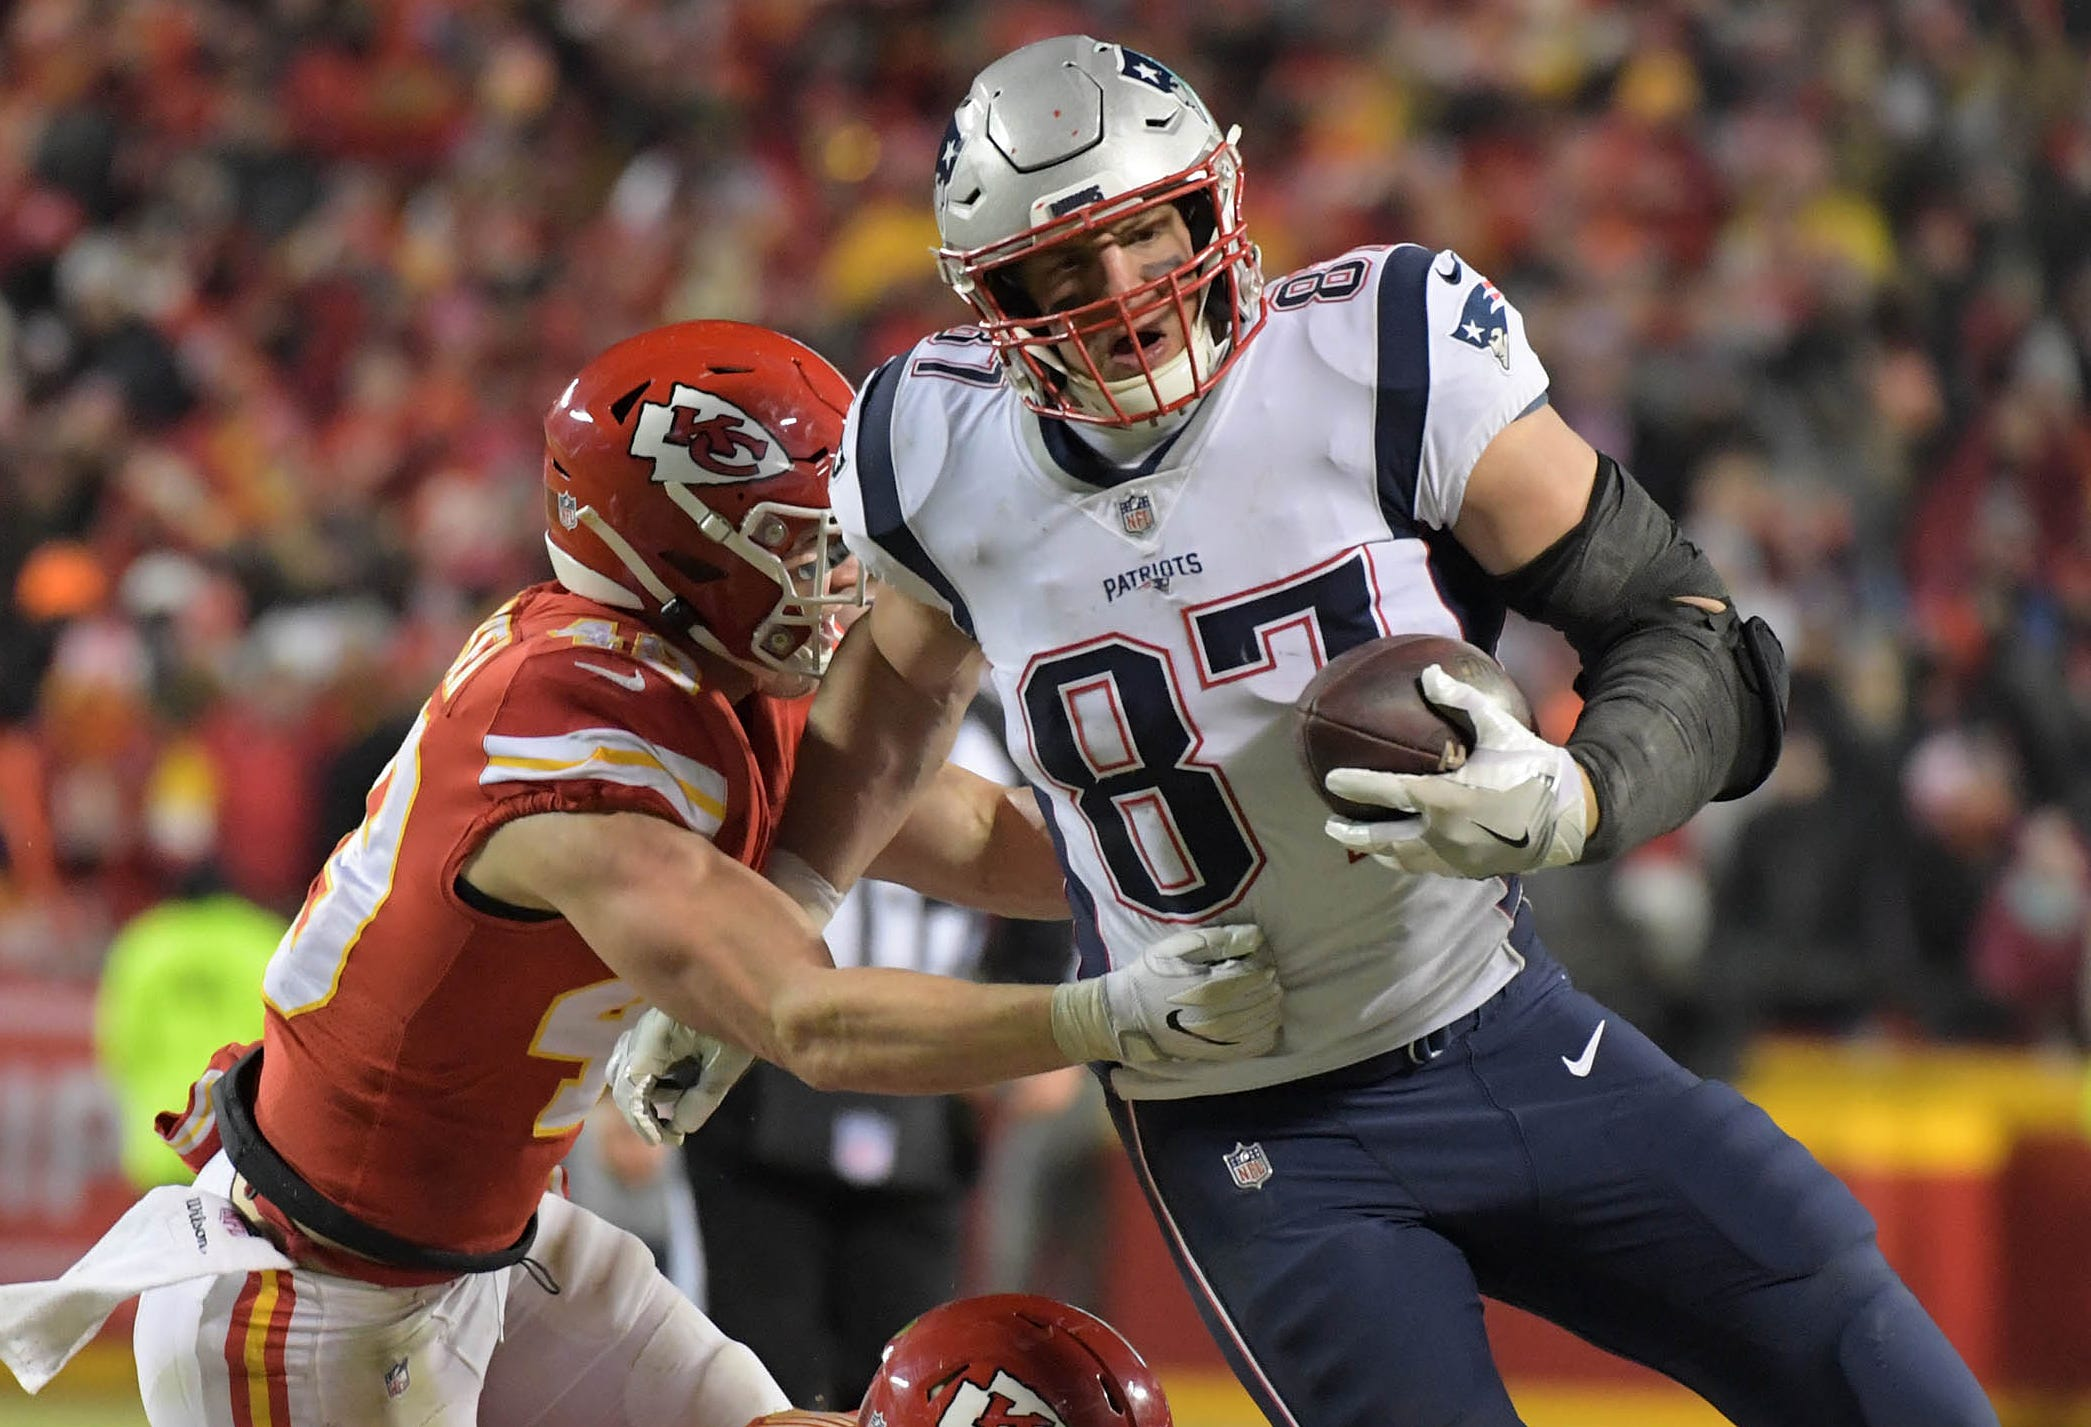 Rob Gronkowski's clutch catches helped the Patriots reach Super Bowl LIII.